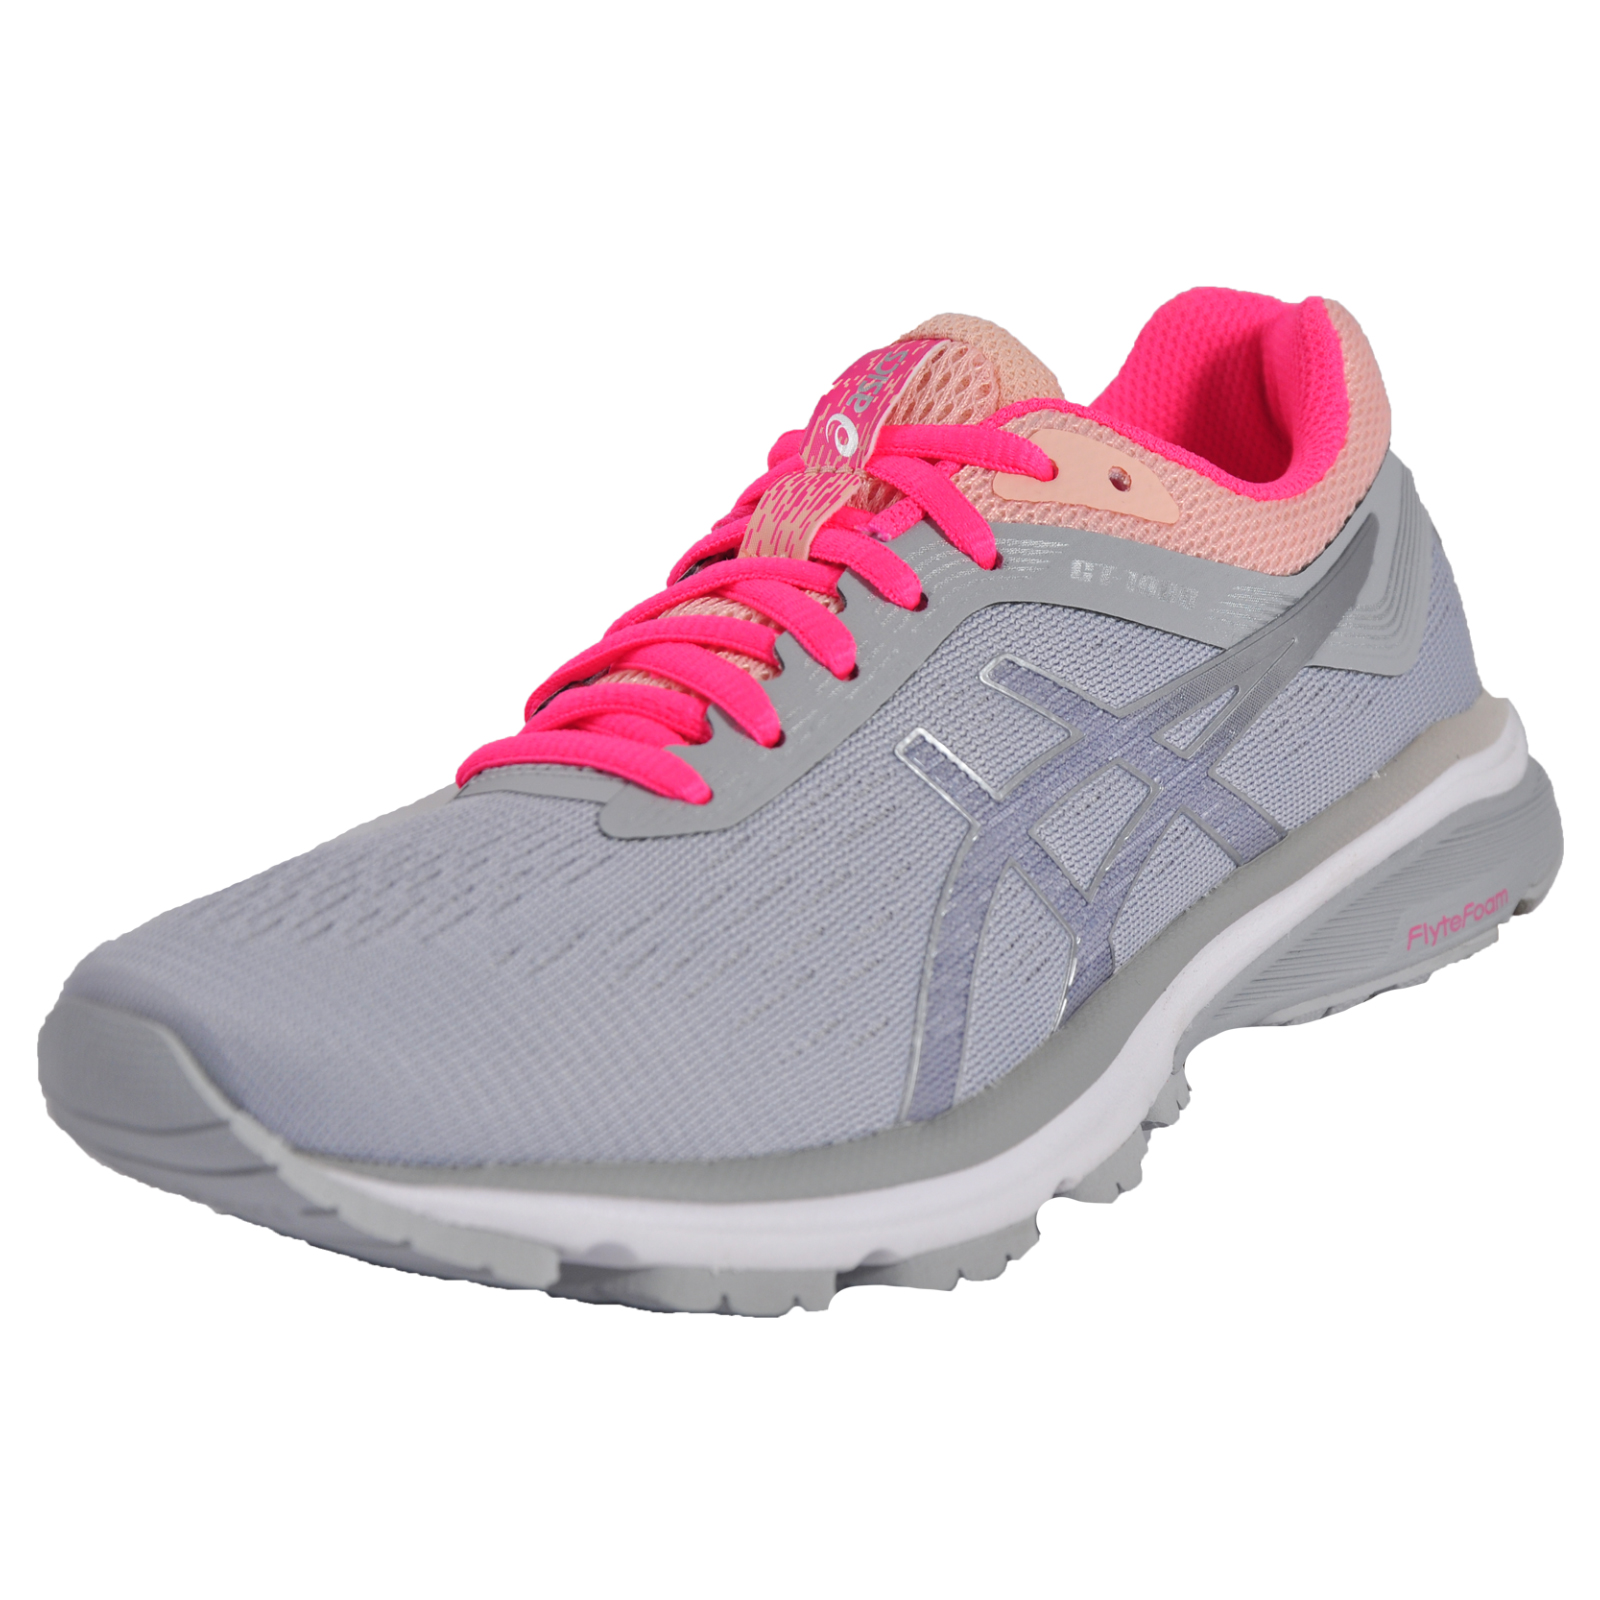 Asics GT 1000 5 GS Junior Girls Pink Support Running Shoes Trainers Pumps